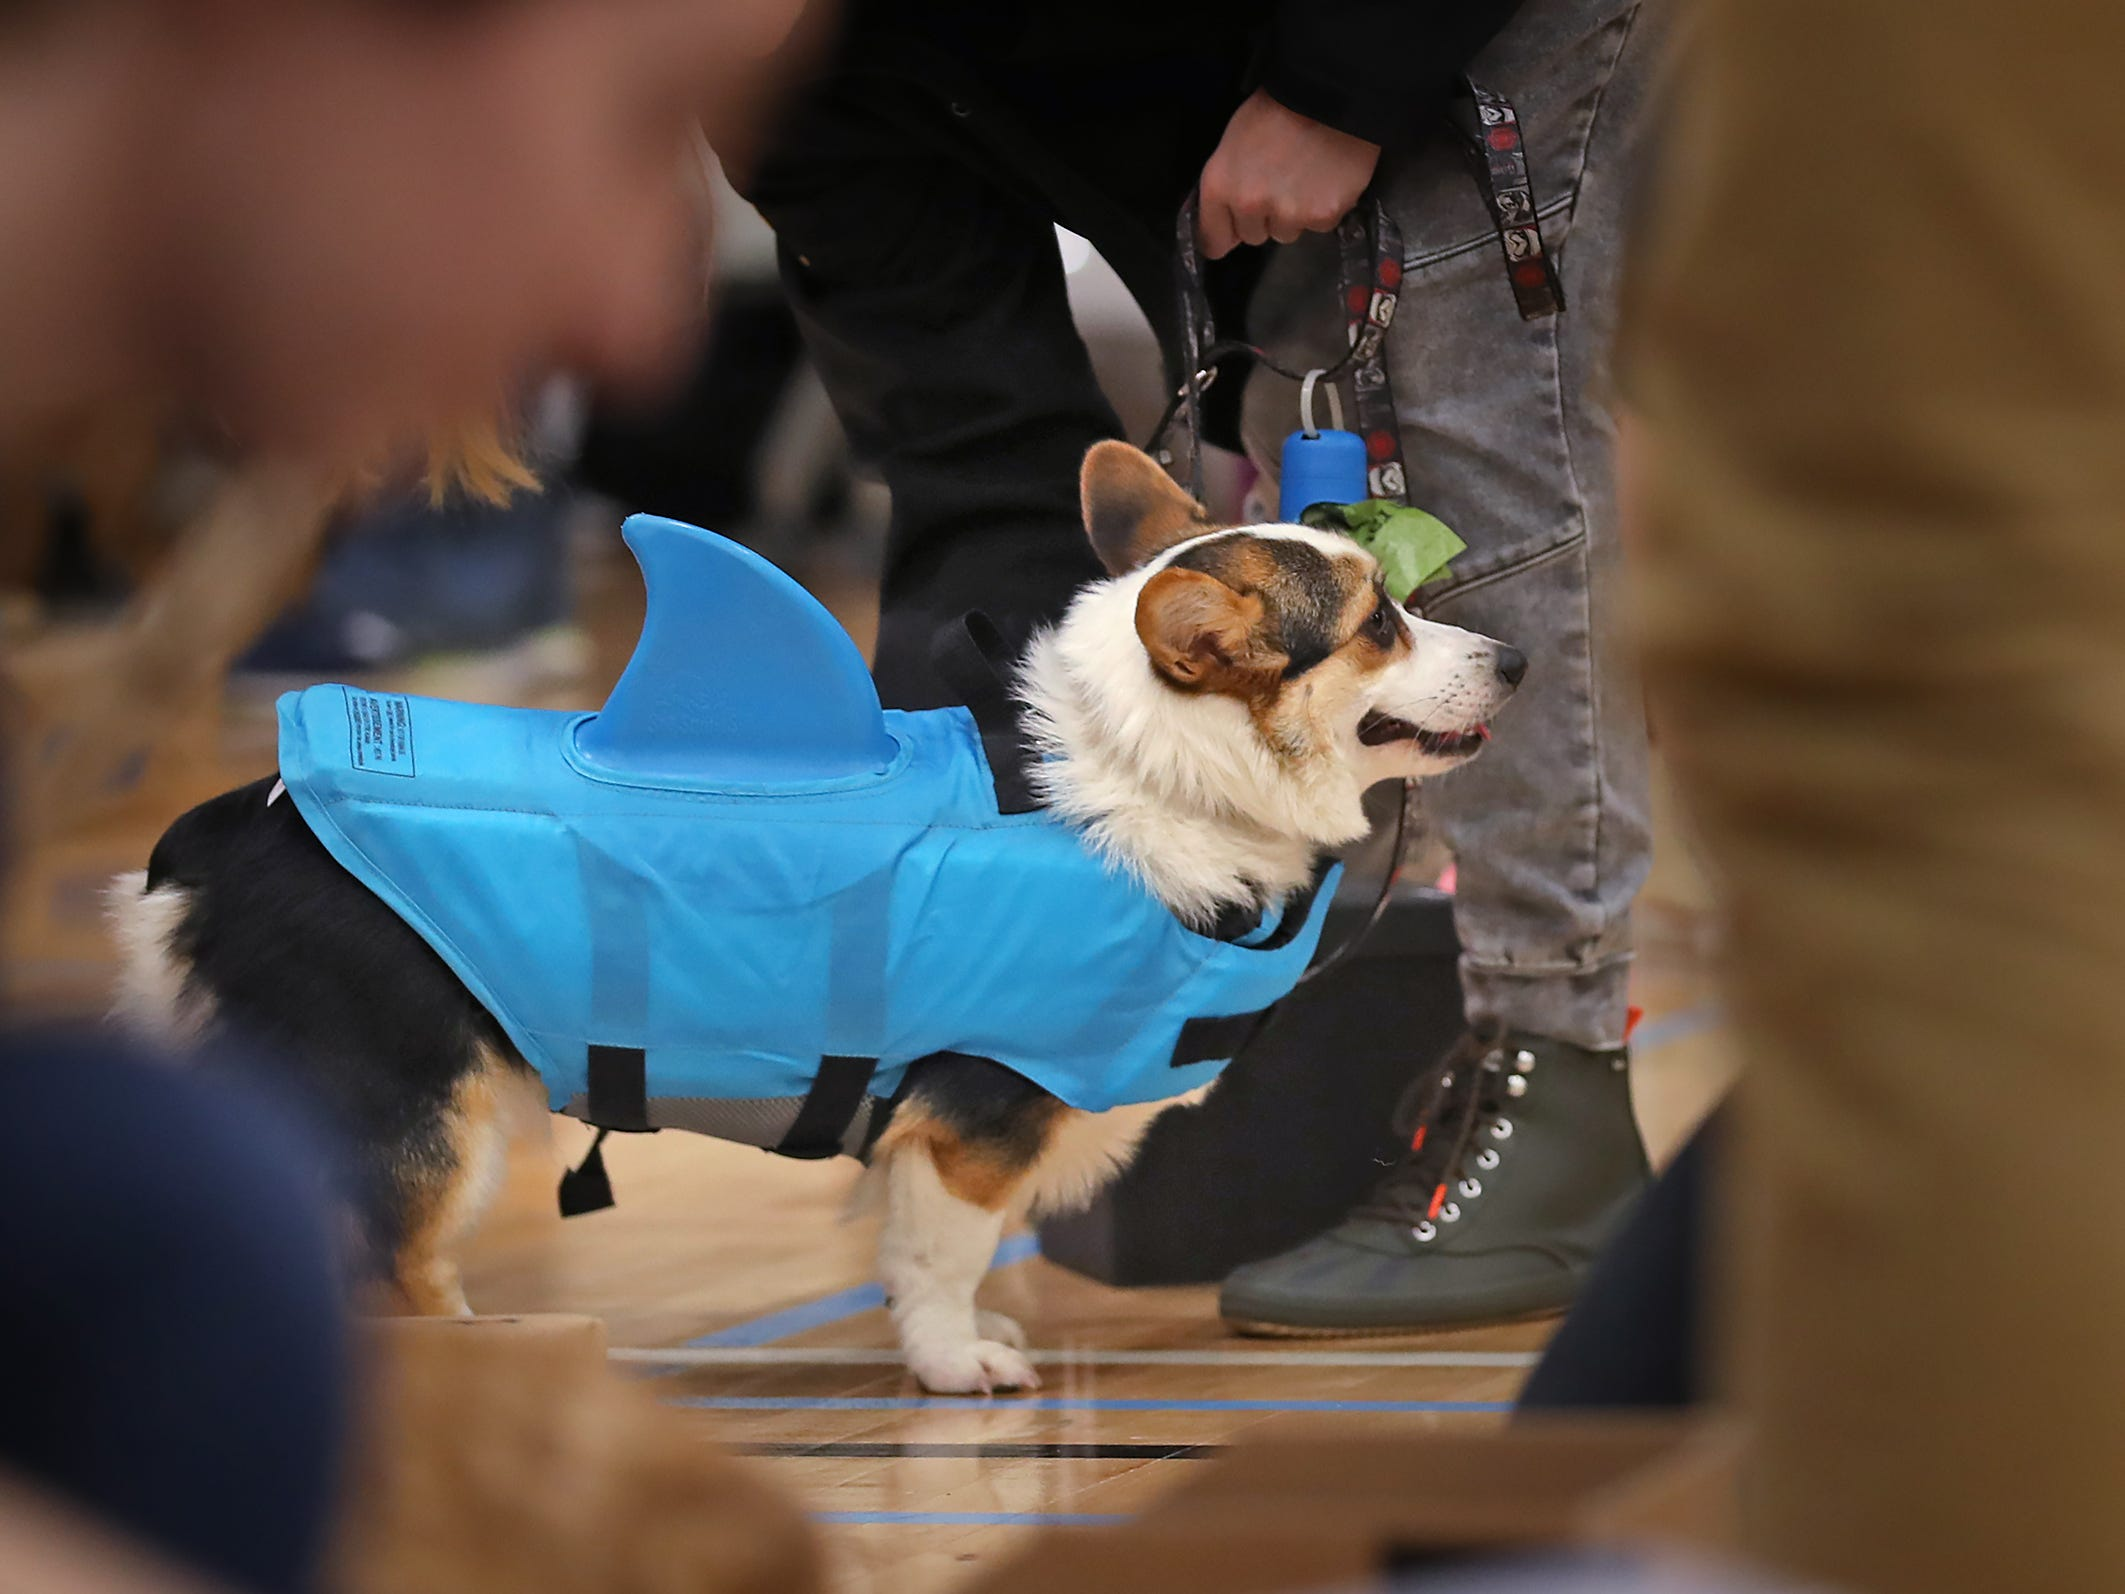 Tator Tot hangs out after the costume contest at the Indianapolis Corgi Limbo & Costume Contest at IUPUI, Sunday, April 14, 2019.  The event benefits children orphaned by HIV/AIDS in eSwatini, Africa.  It is presented by the Give Hope, Fight Poverty IUPUI chapter.